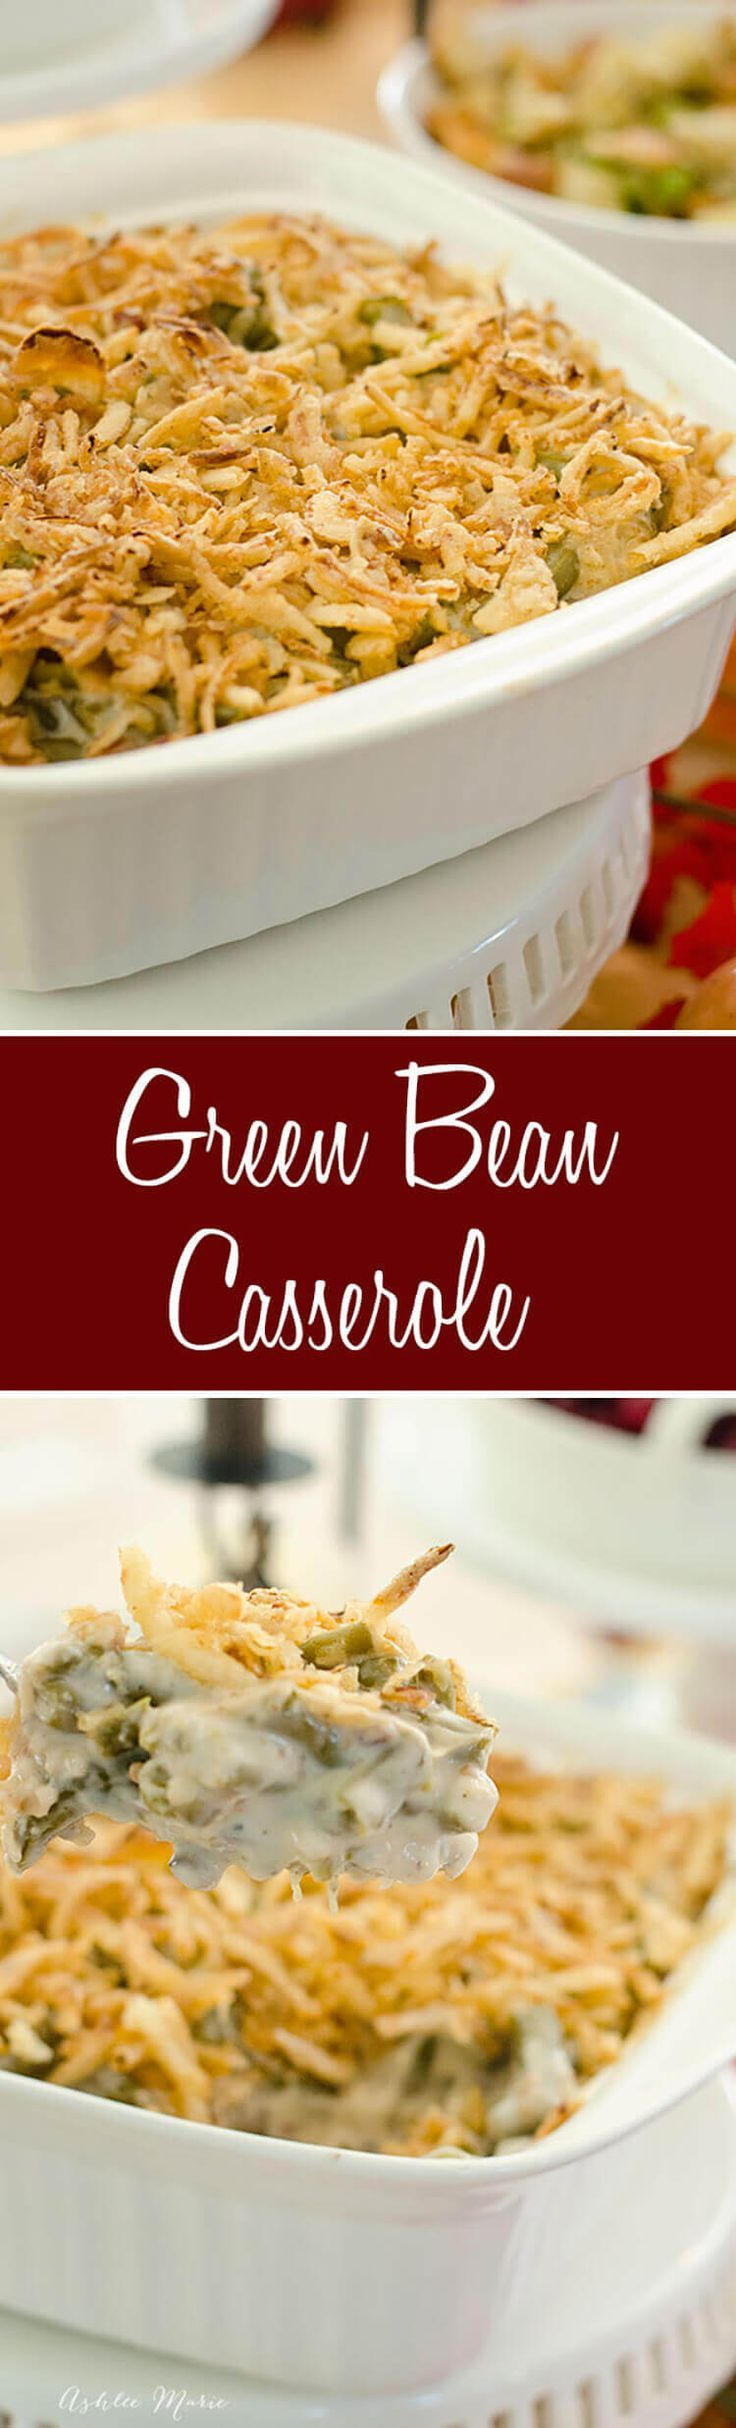 Classic Green Bean Casserole recipe. A classic and delicious Thanksgiving dish, this green bean casserole is oh-so-delicious #thanksgiving